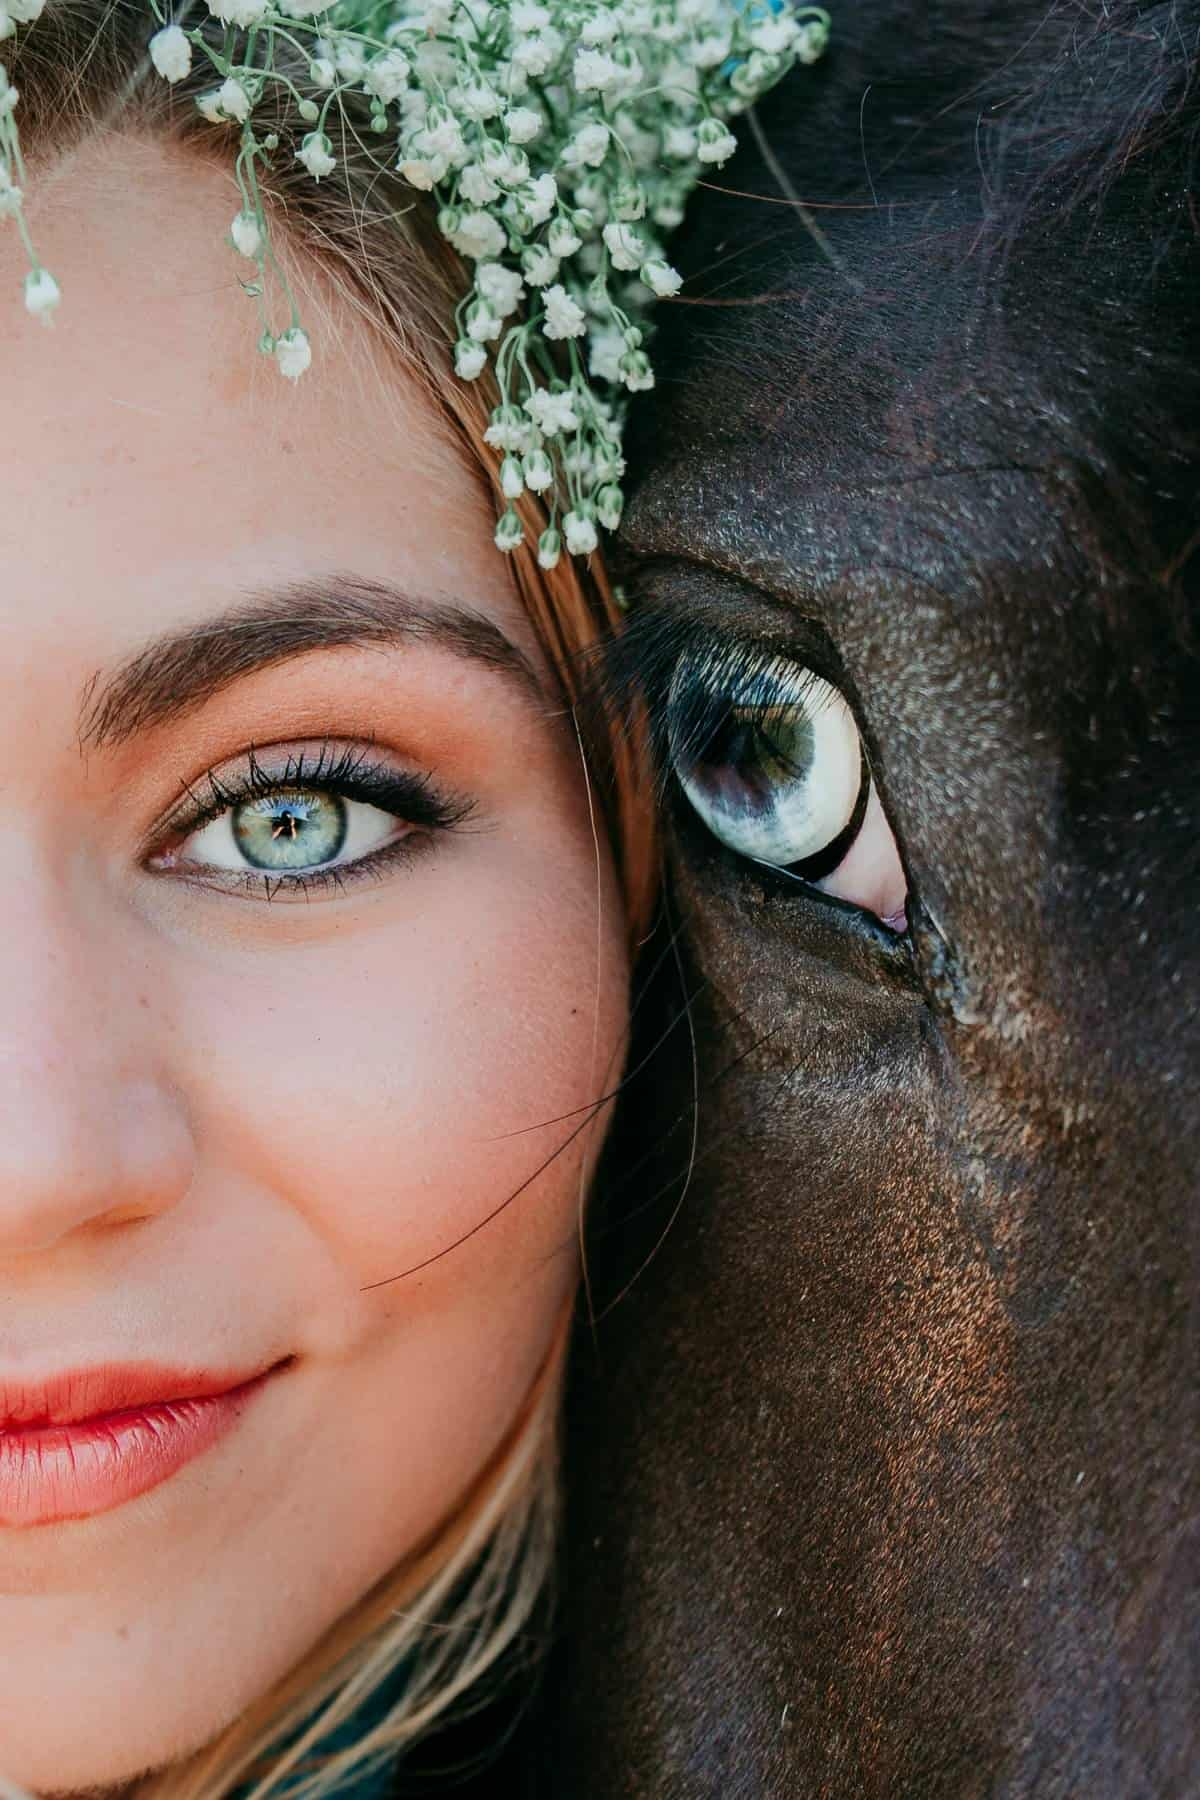 A close up of half of the face of a horse and a woman